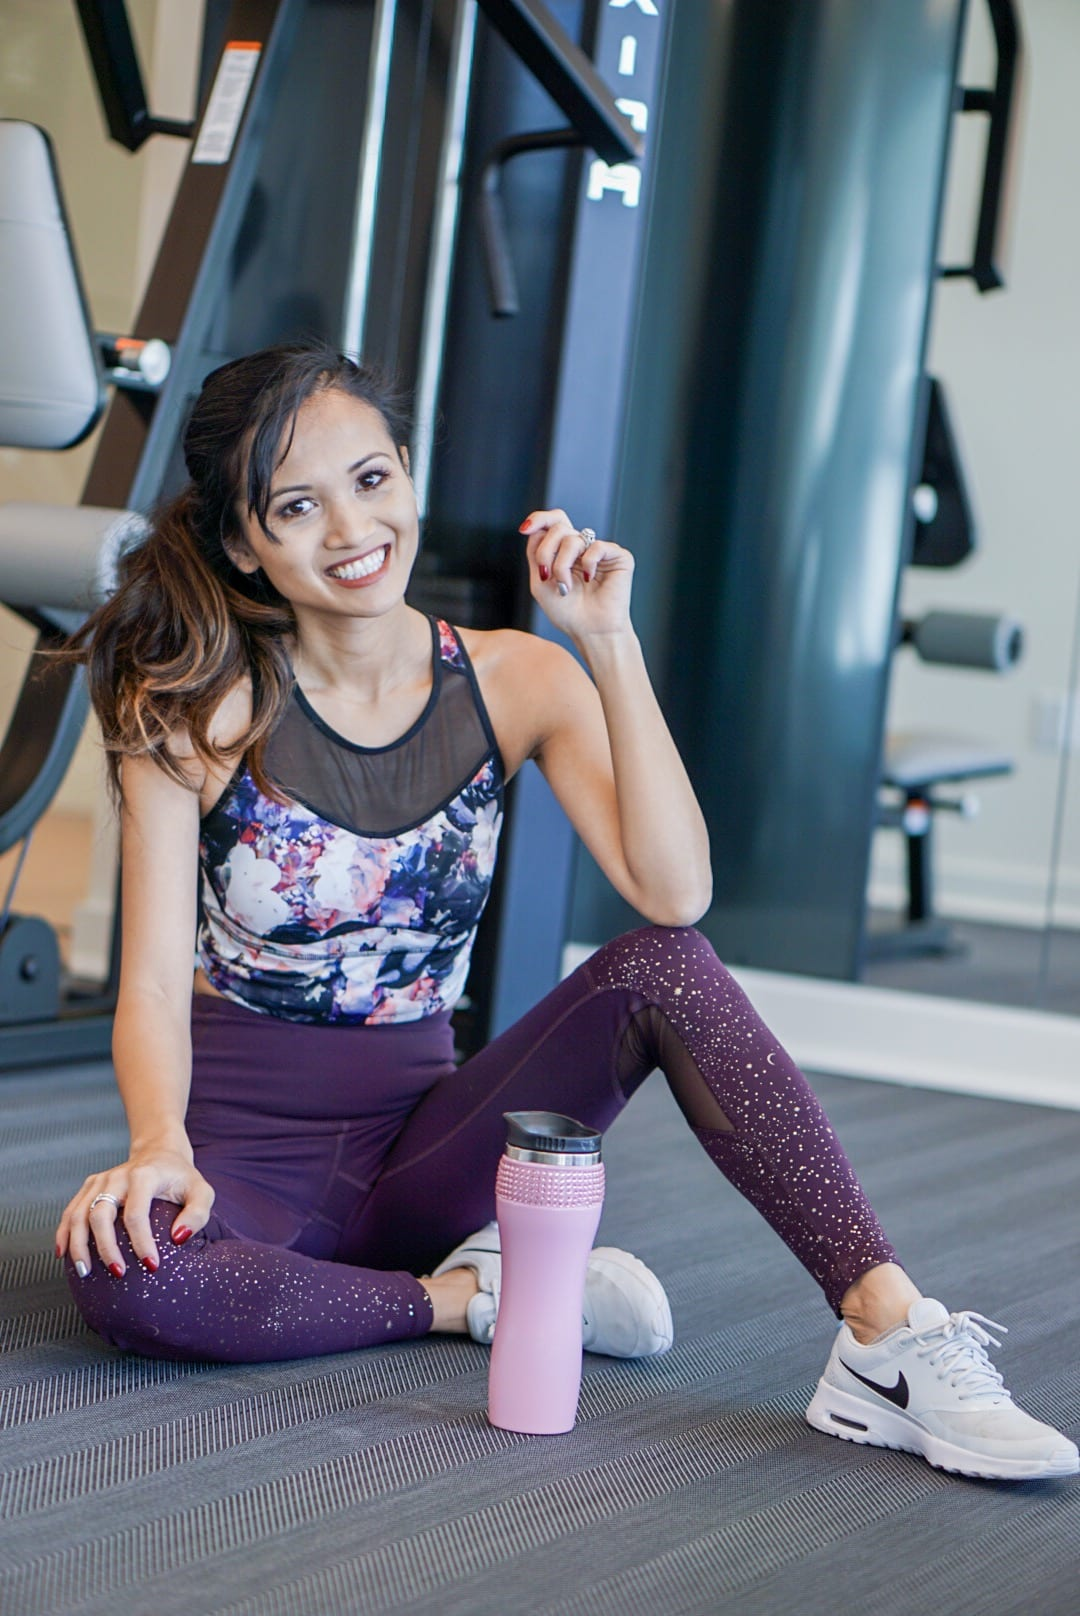 printed workout leggings, fitness fashion, nike air, activewear, gym clothes, activewear style, activewear outfits, floral leggings, printed leggings, workout clothes, under $50 style, mom on a budget, old navy activewear